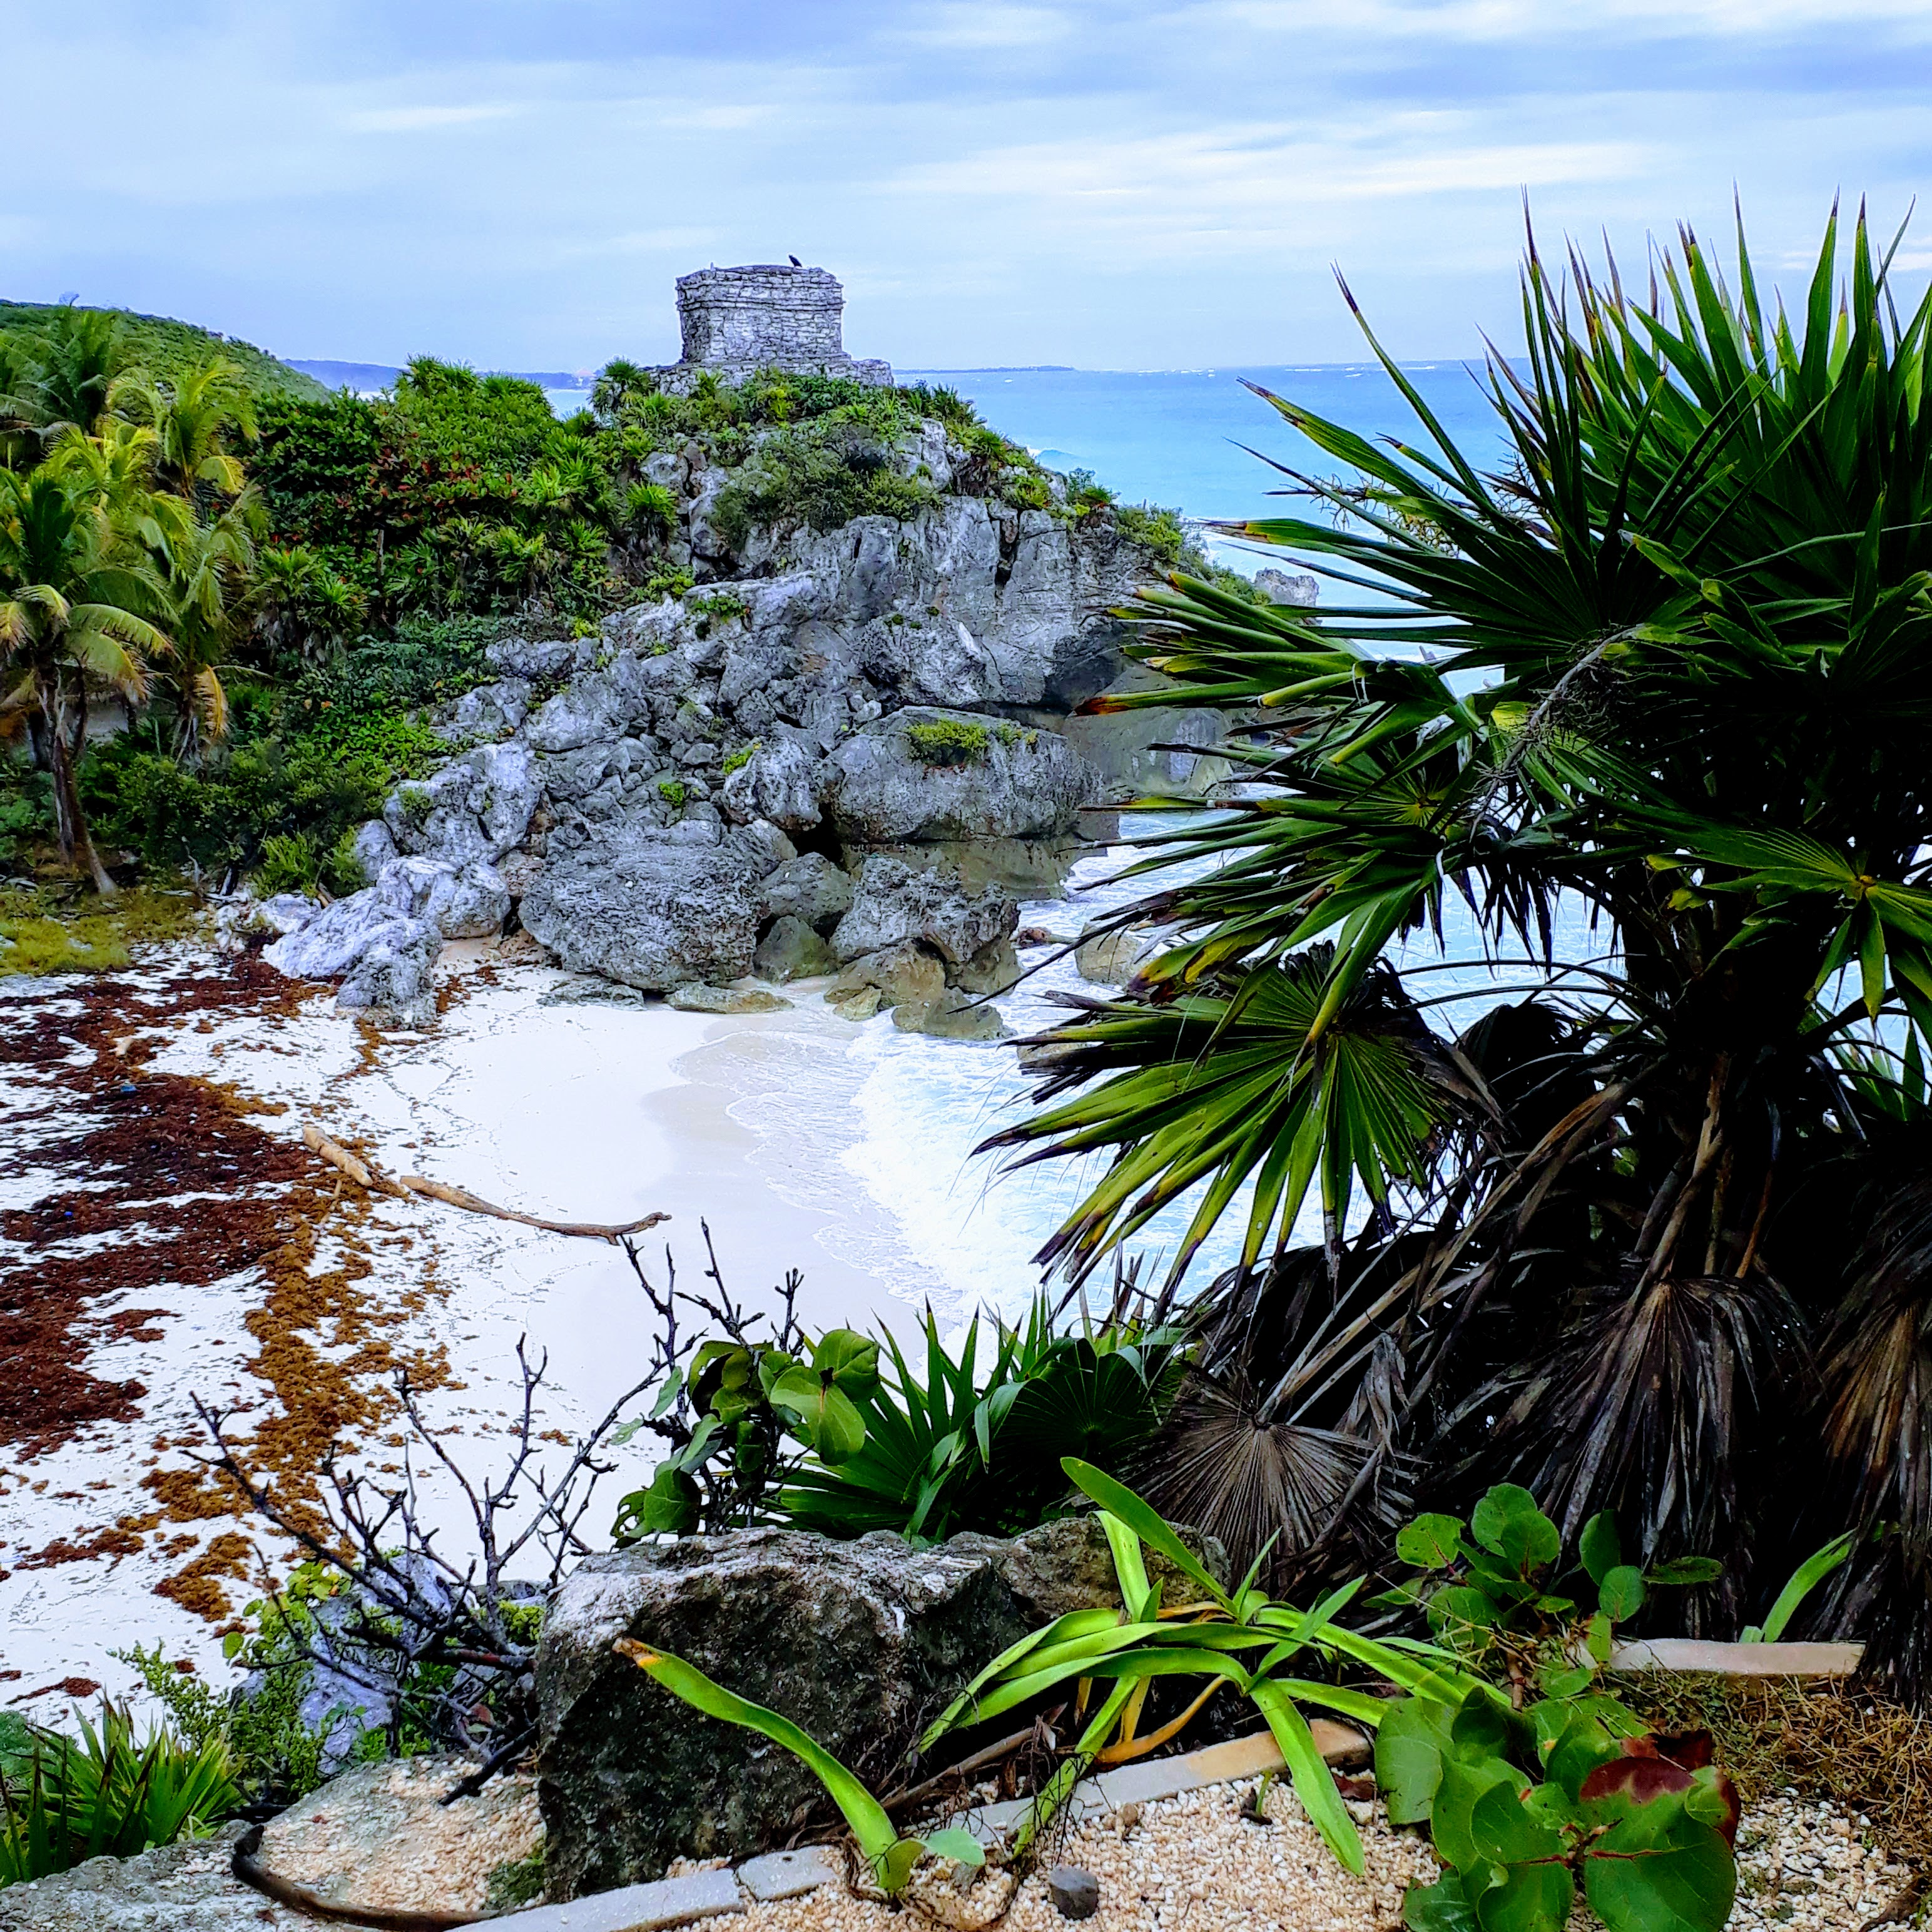 Best Places In Mexico To See Ruins: Things To Do In Tulum Mexico